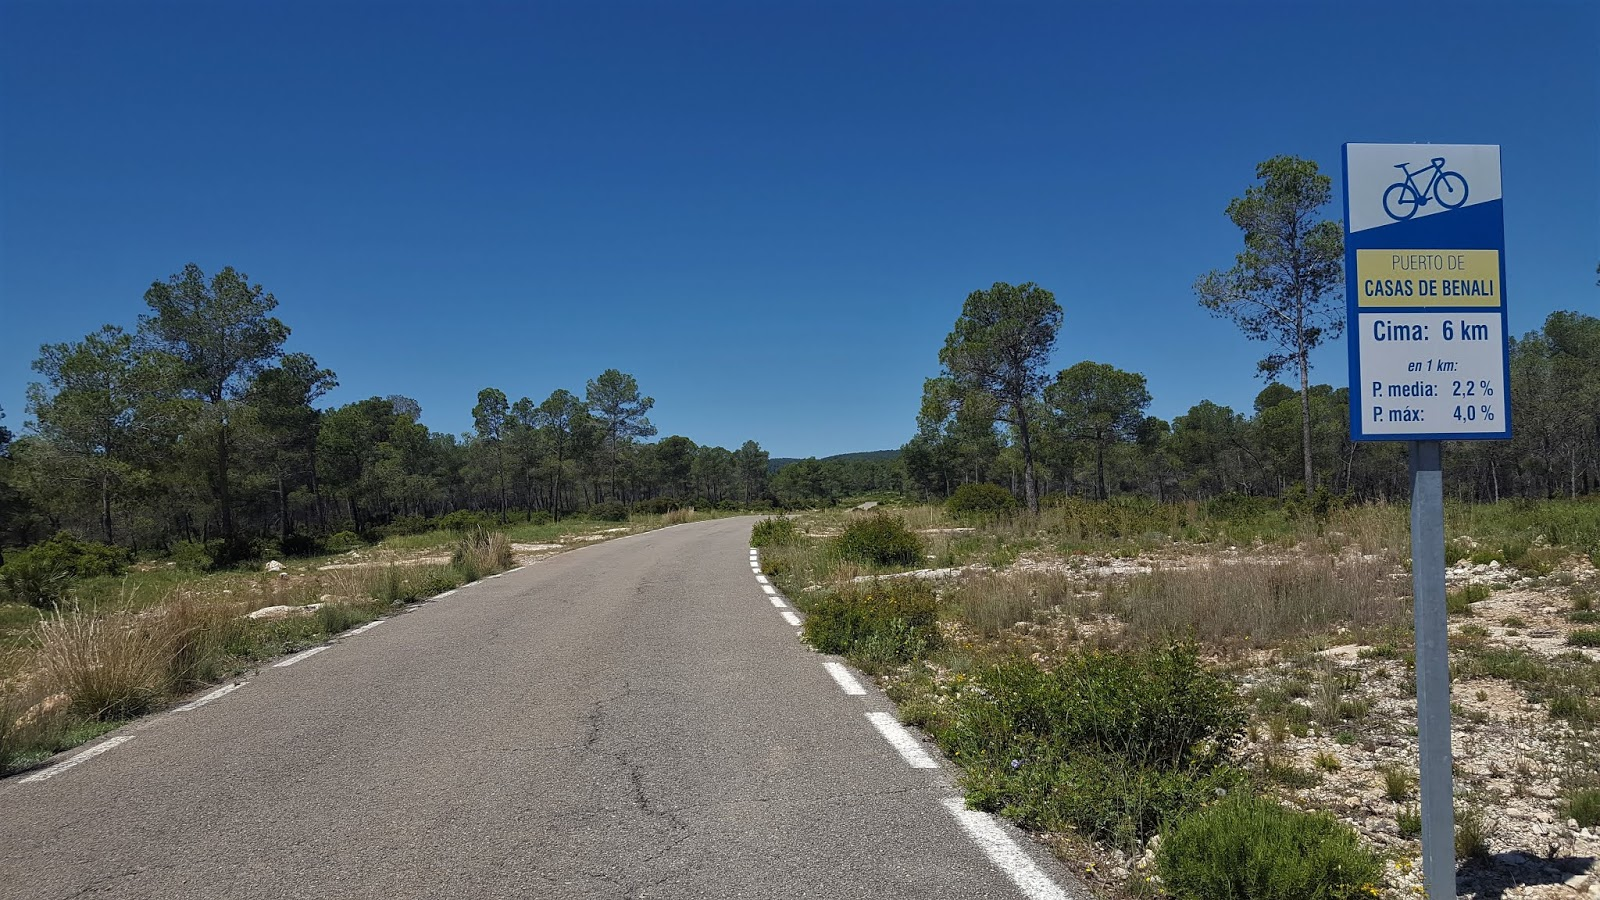 Road through Mediterranean pine forests to Casas de Benalí, Spain